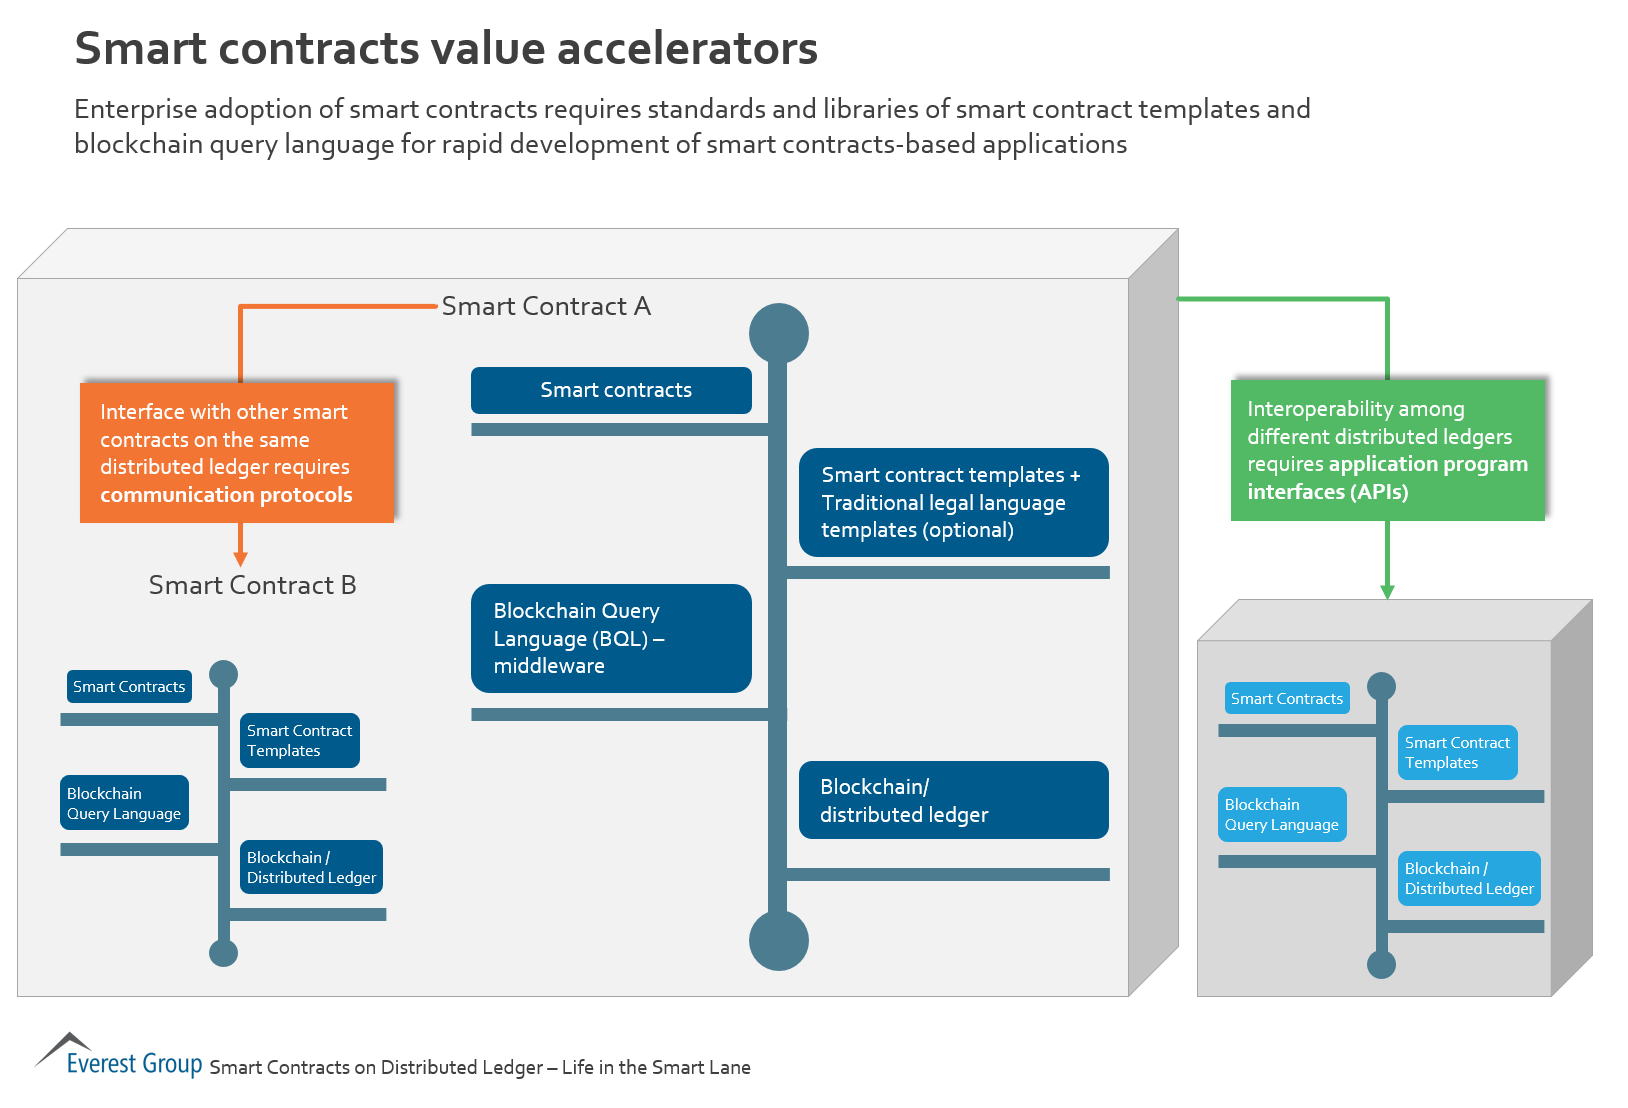 smrt-contracts-val-acc